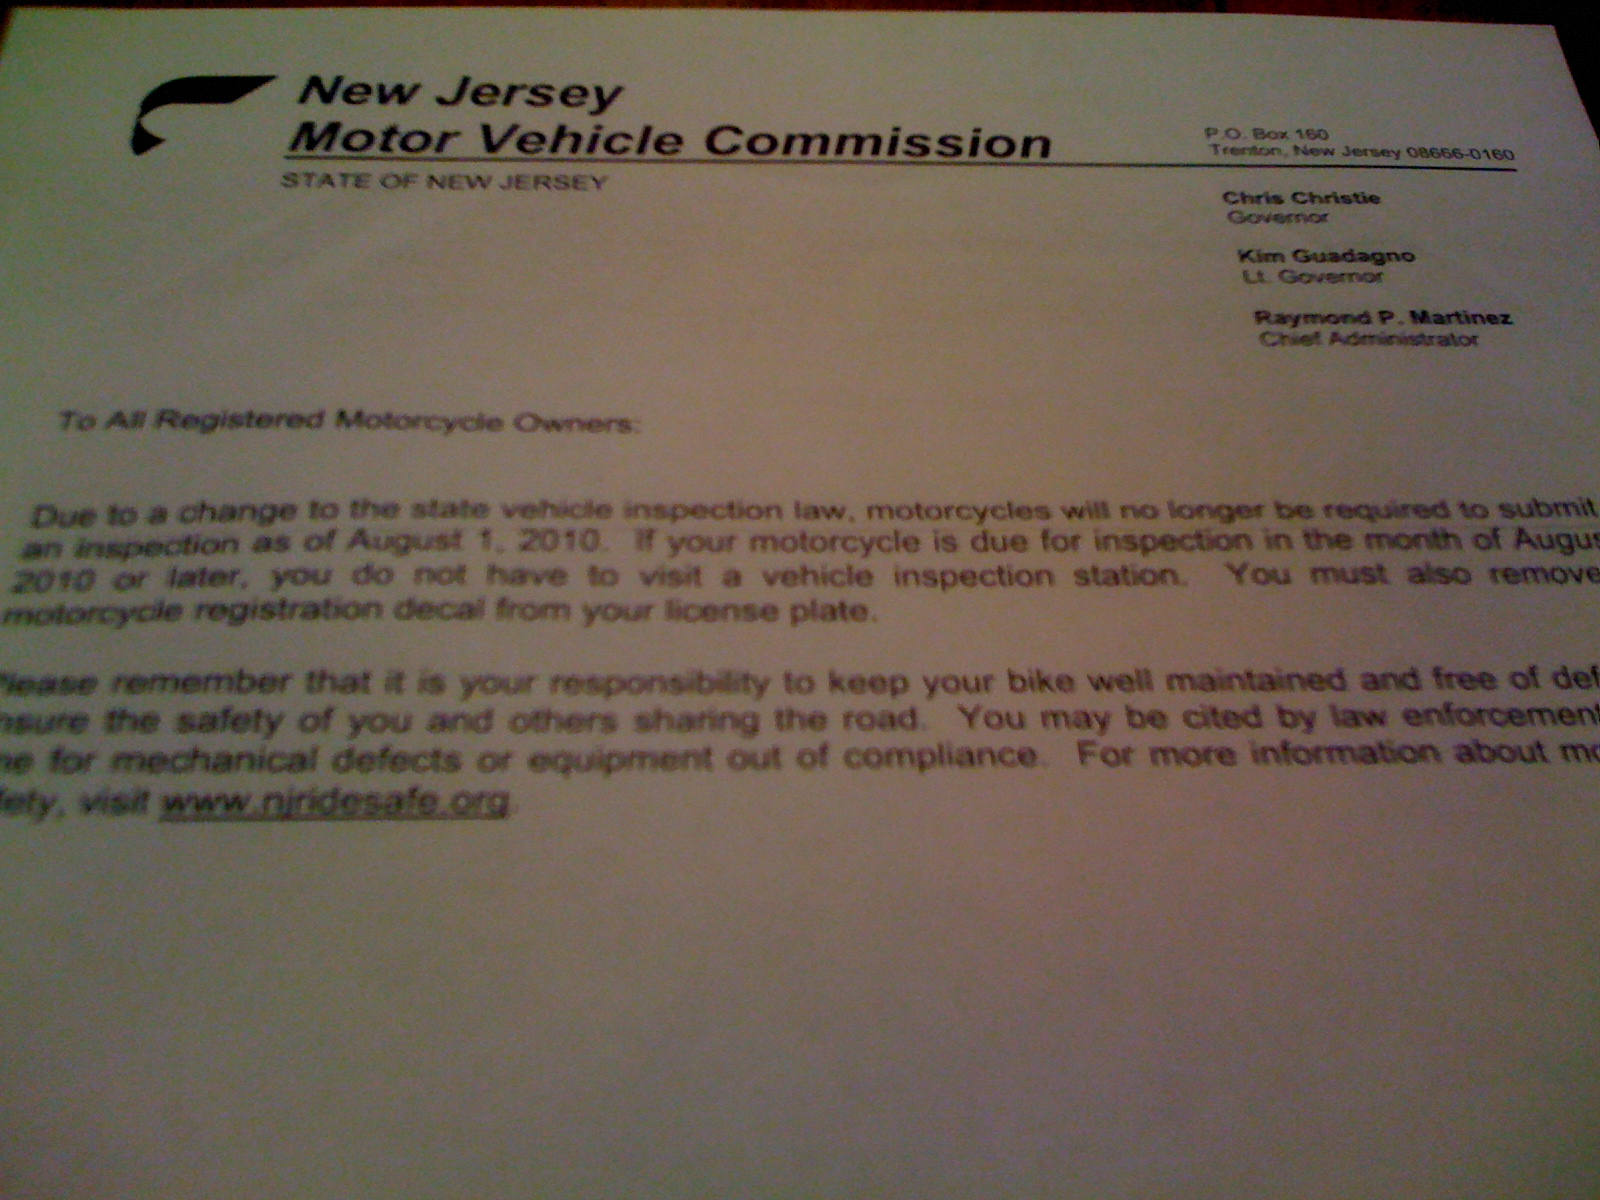 Nj Vehicle Inspection >> Nj Motor Vehicle Commission No More Moto Inspections Ducati Ms